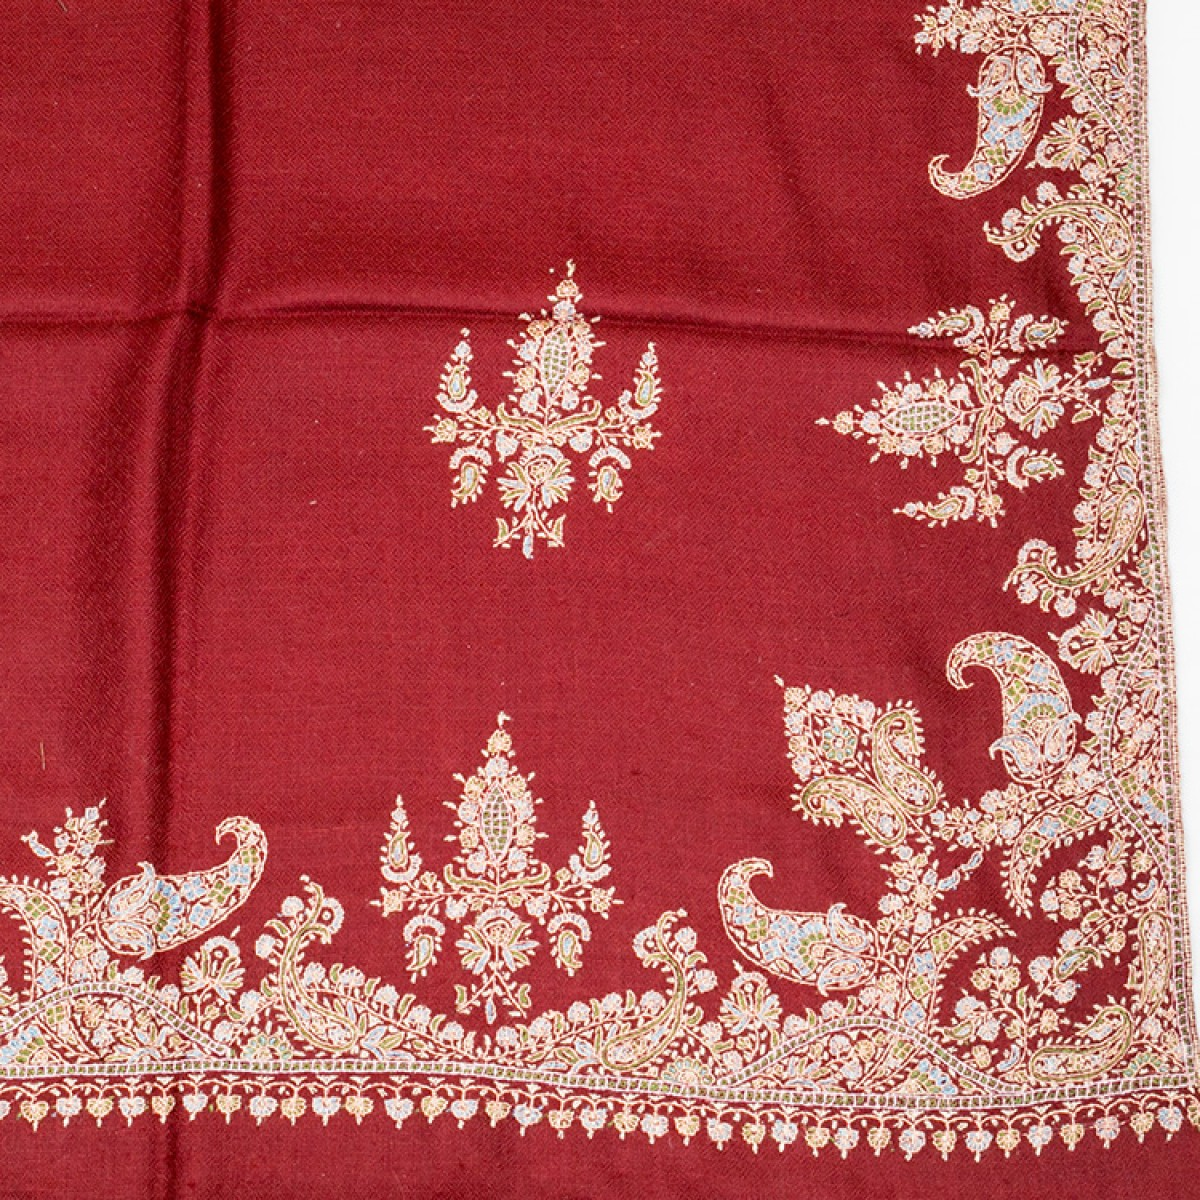 Embroidered Pashmina Shawl - Maroon